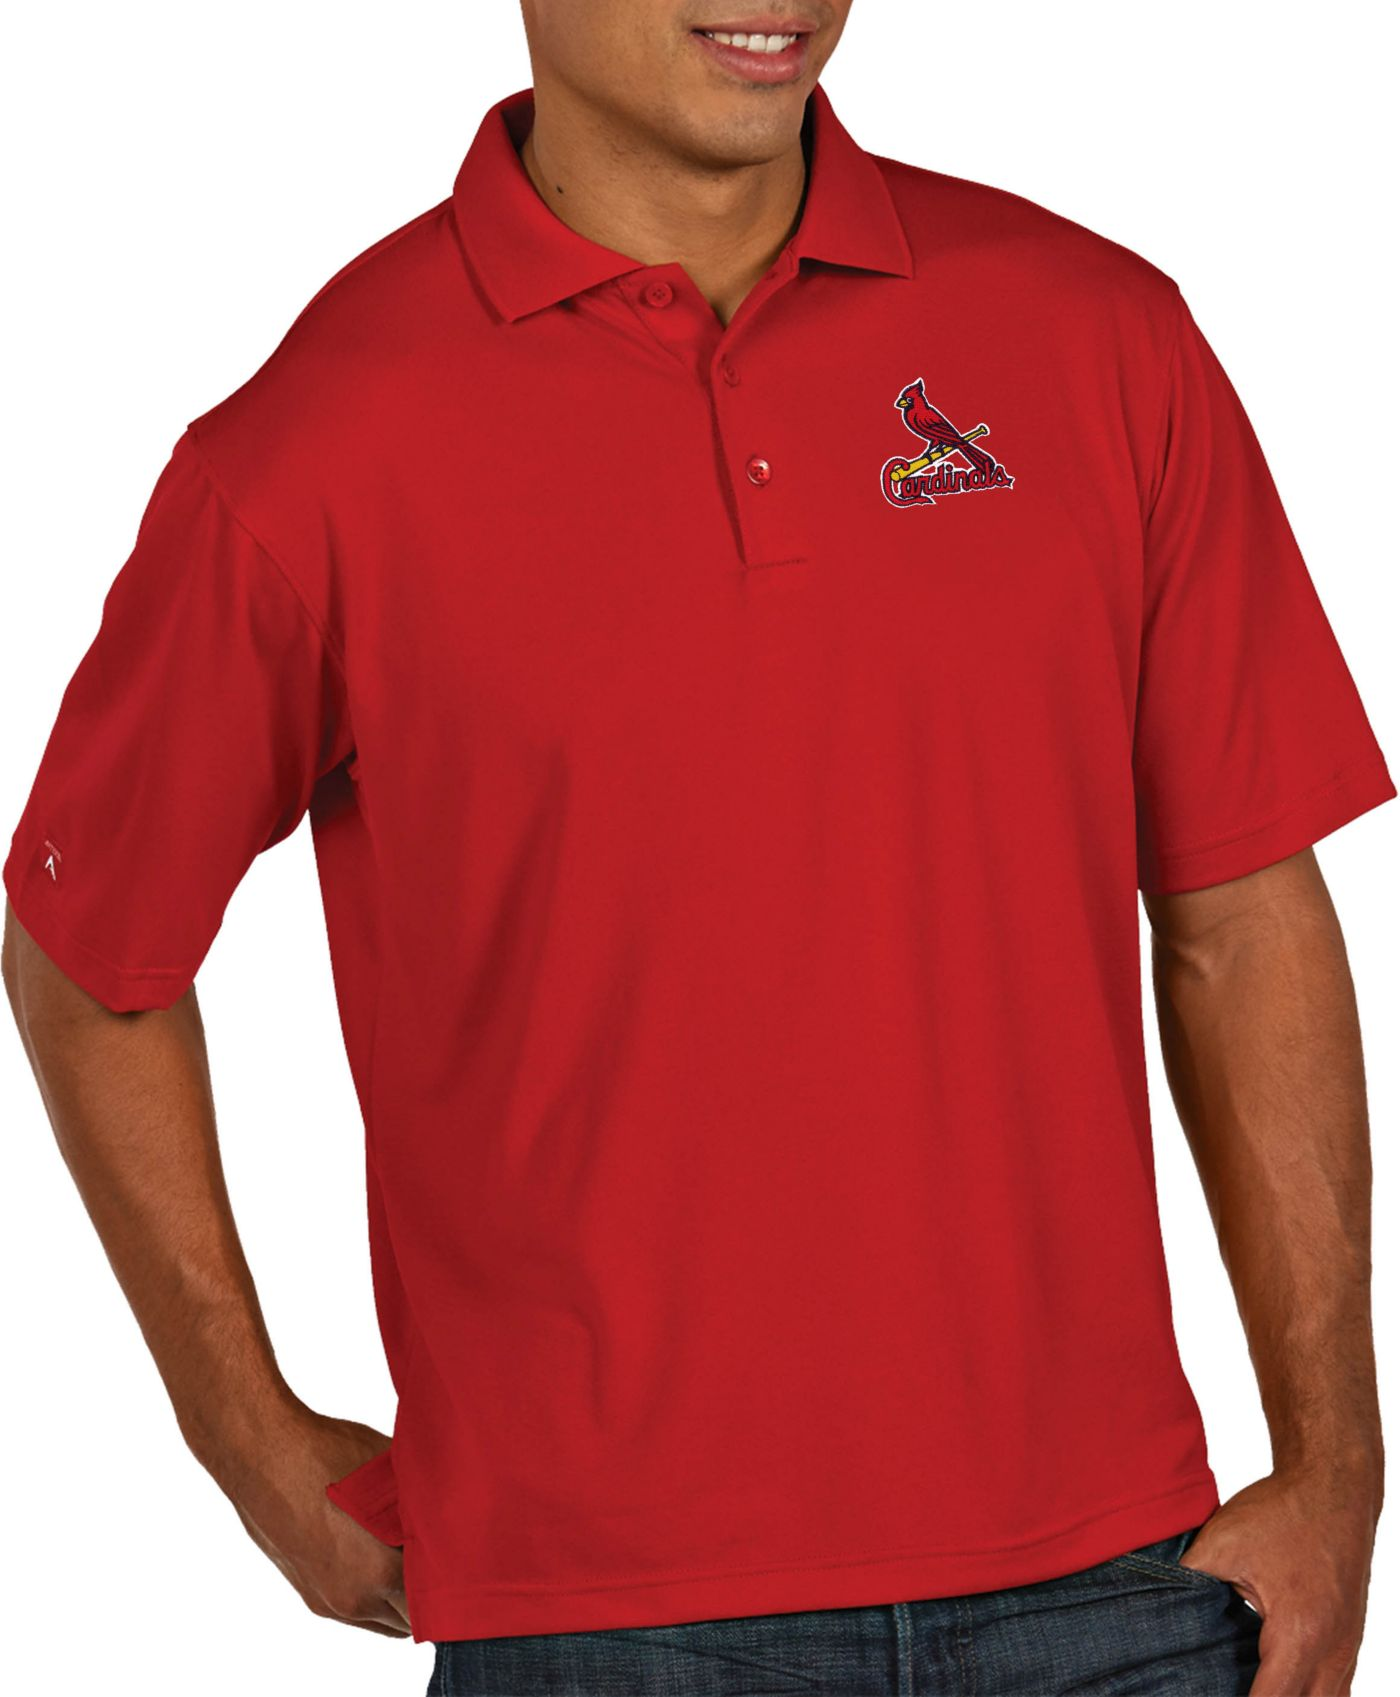 Antigua Men's St. Louis Cardinals Pique Red Performance Polo